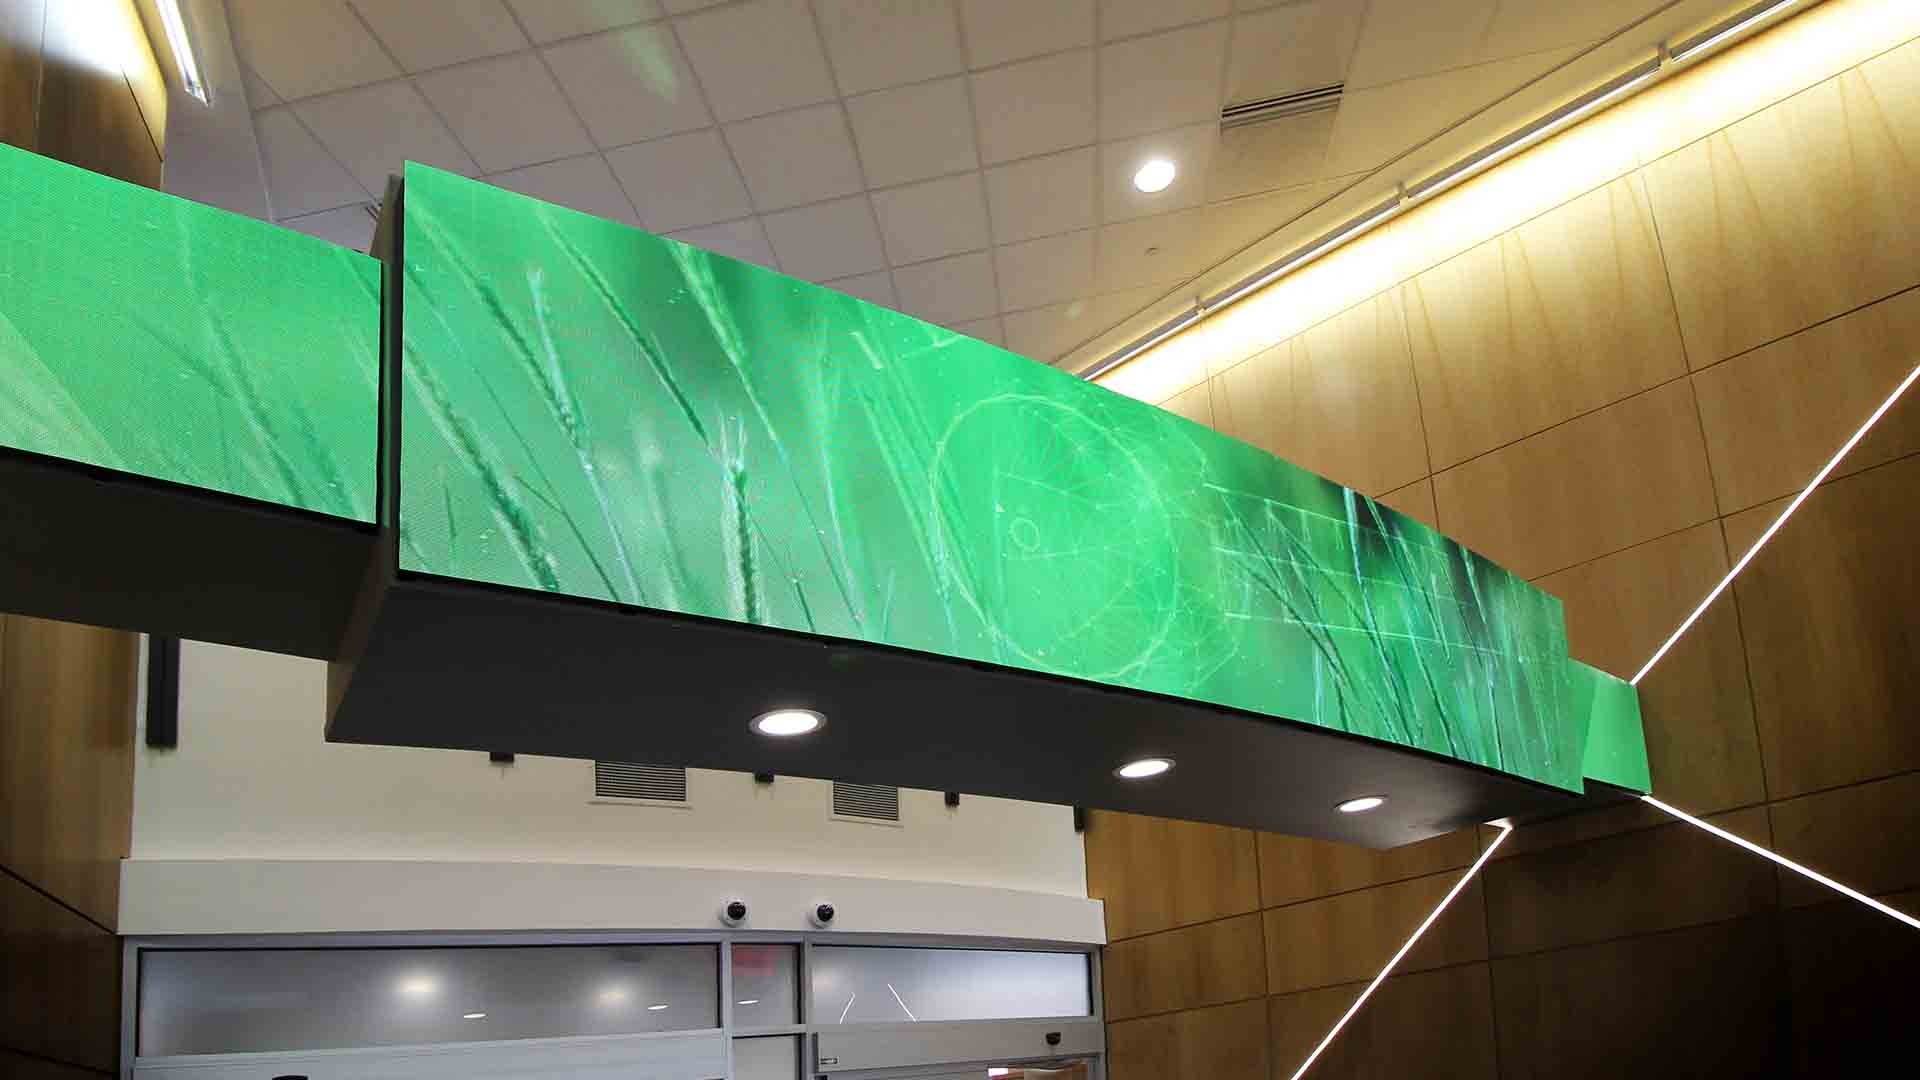 Close up view of LED media screen on soffit above reception desk in lobby